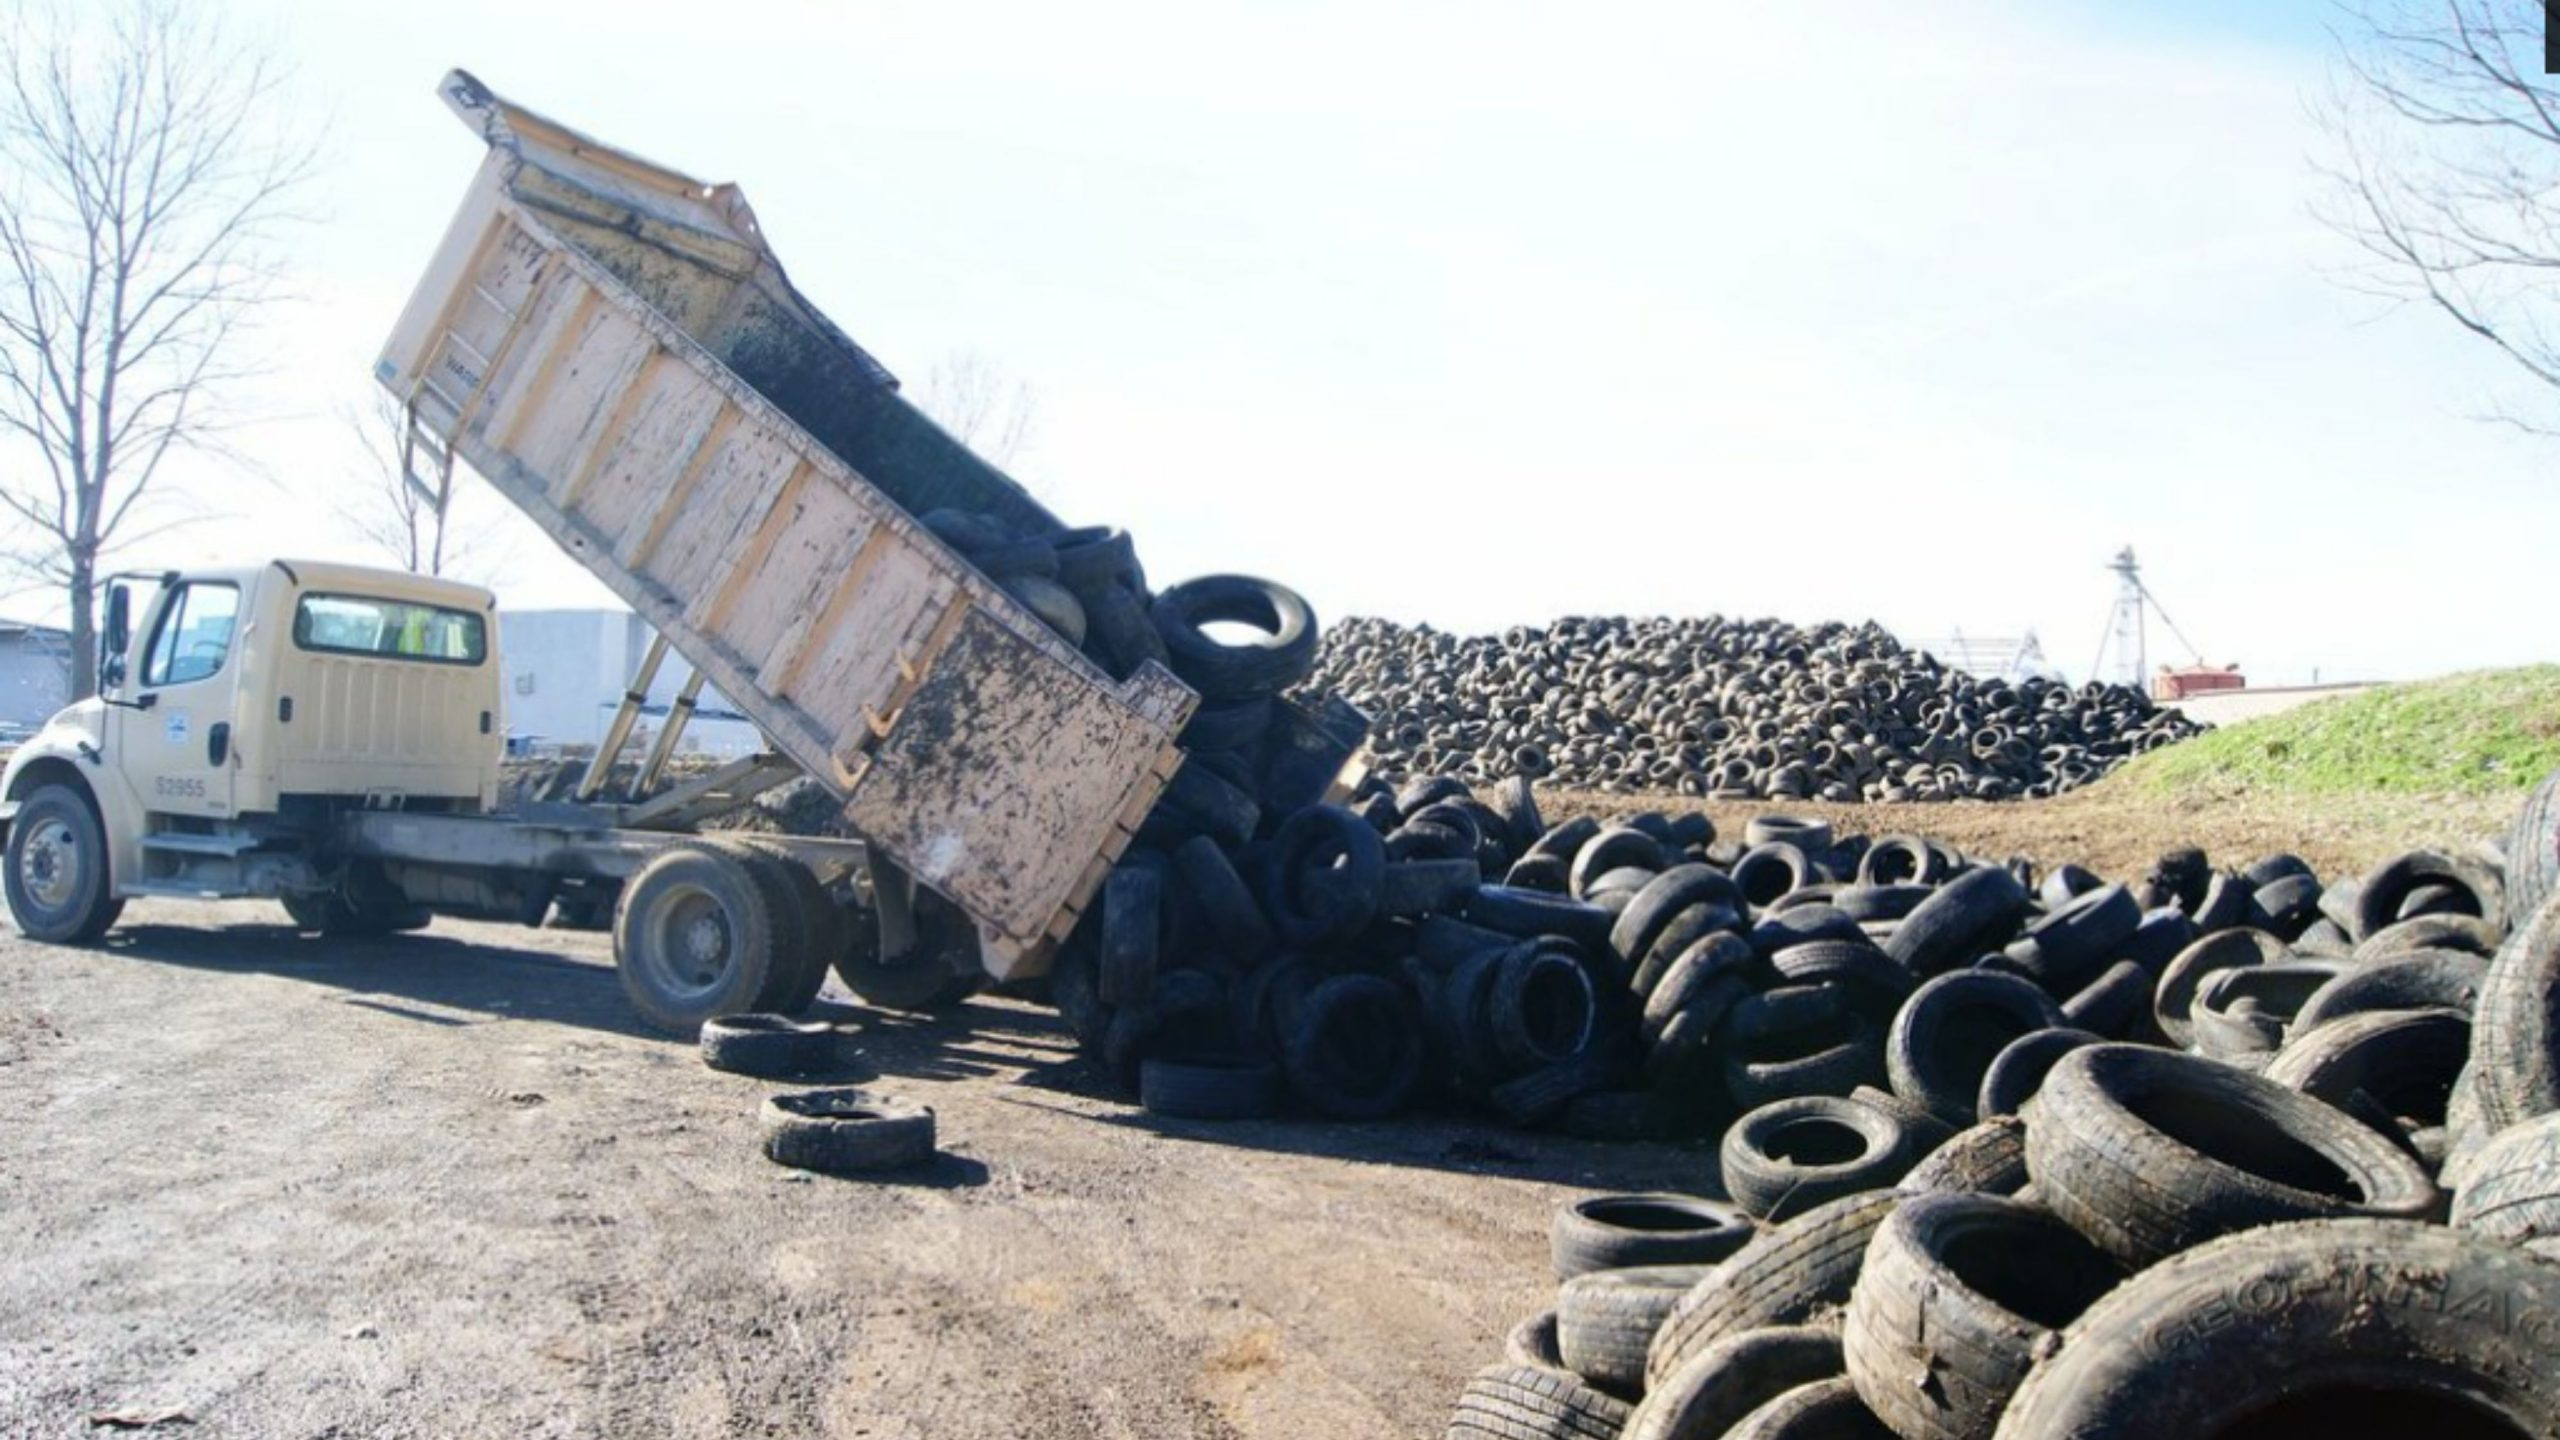 Memphis City Beautiful Commission Gives New Life to Discarded Tires